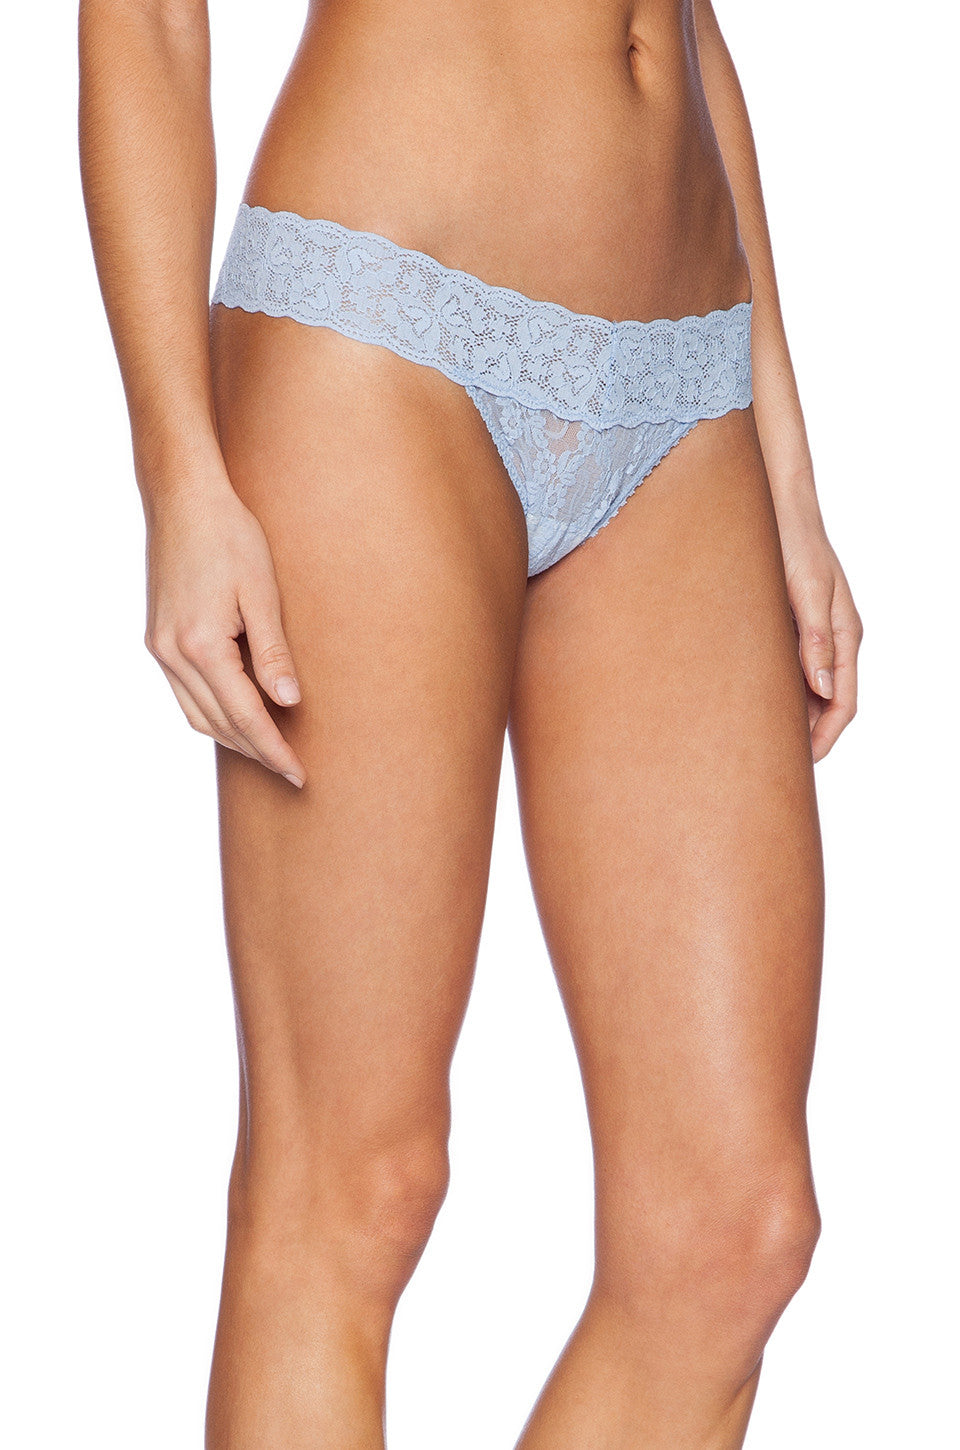 Only Hearts Low Rise Stretch Lace Must Have Thong - Knickers & Pearls Boutique - 7